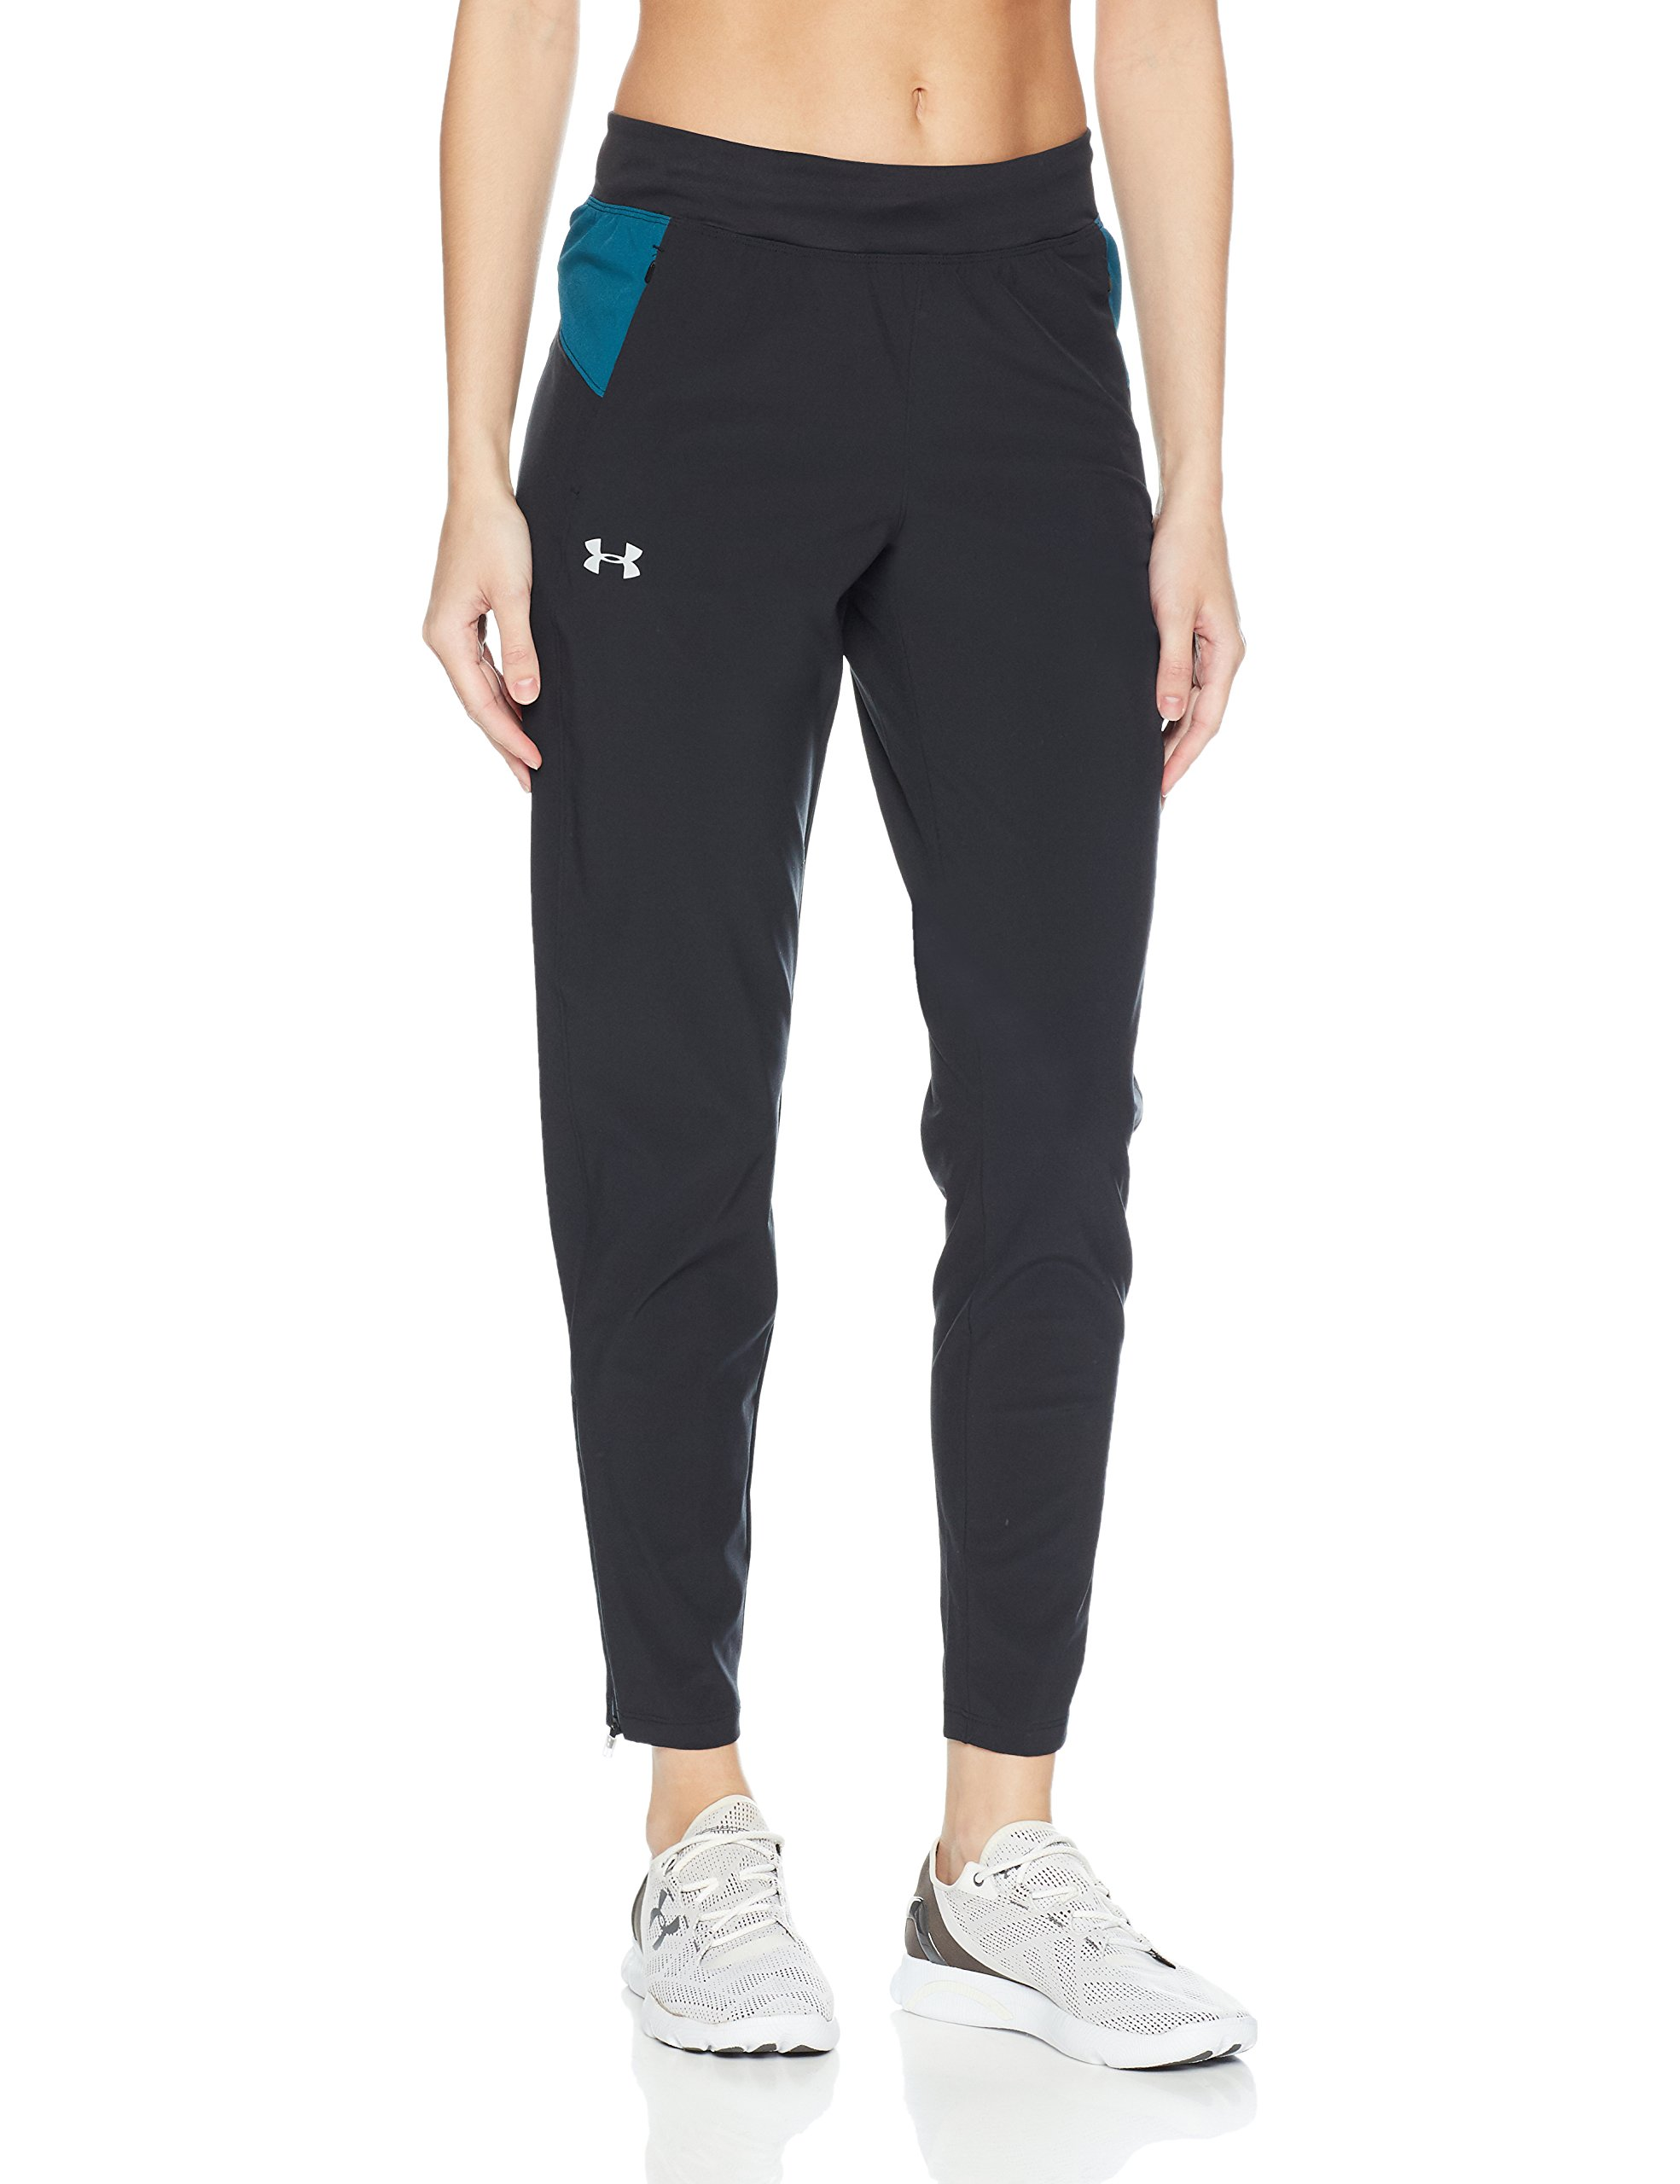 Under Armour Women's OutRun The Storm Pants, Black (002)/Reflective, Small